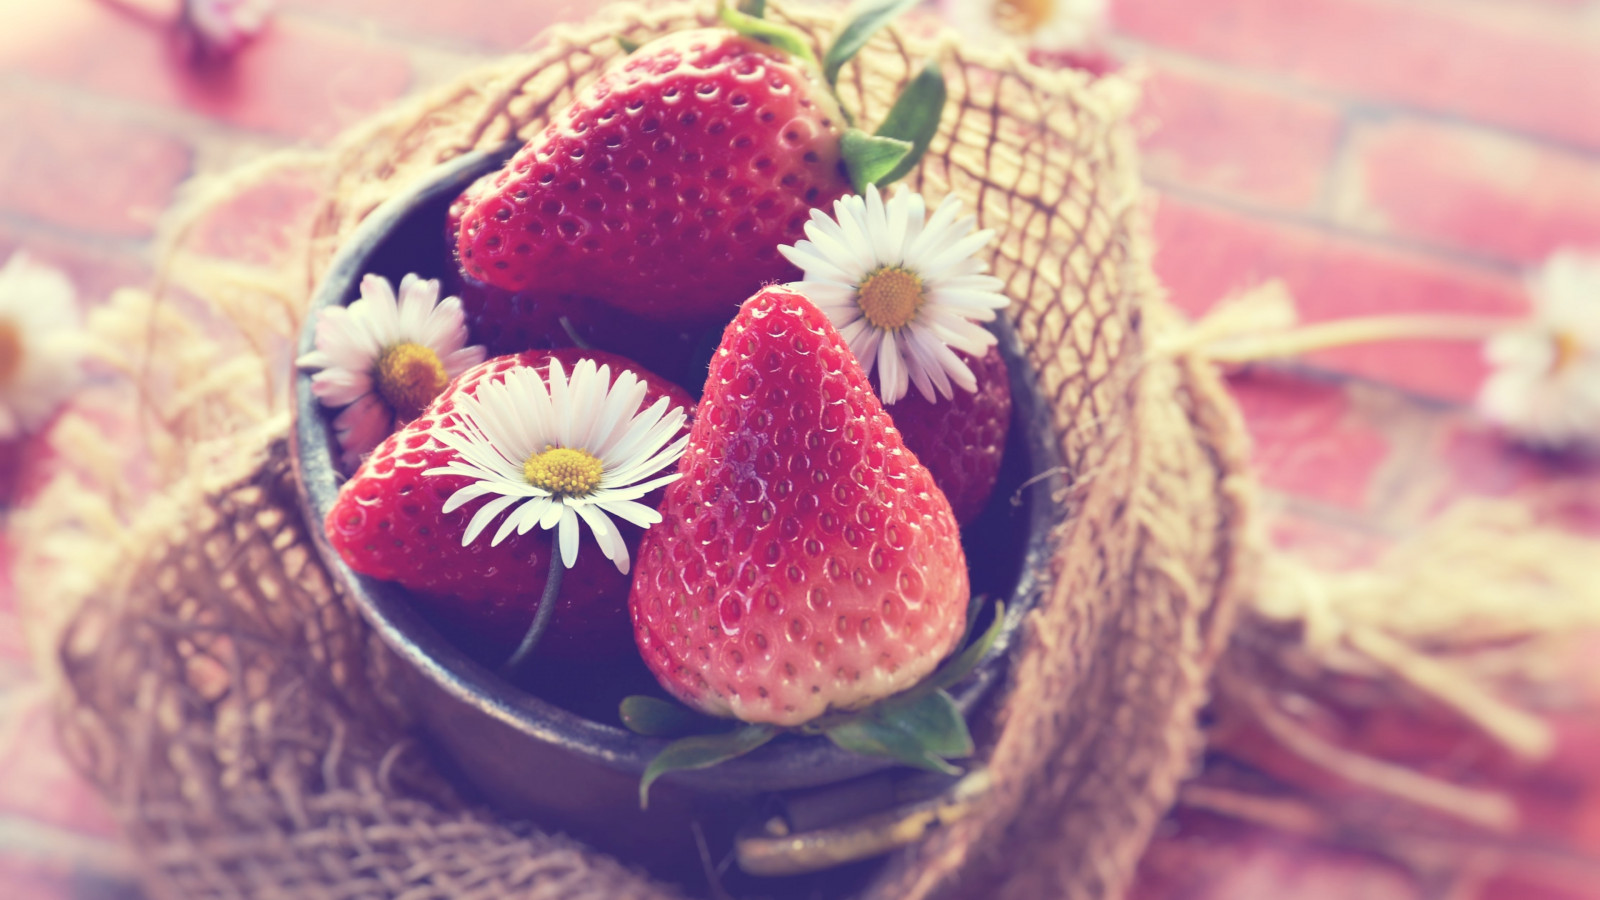 Tasty strawberries wallpaper 1600x900